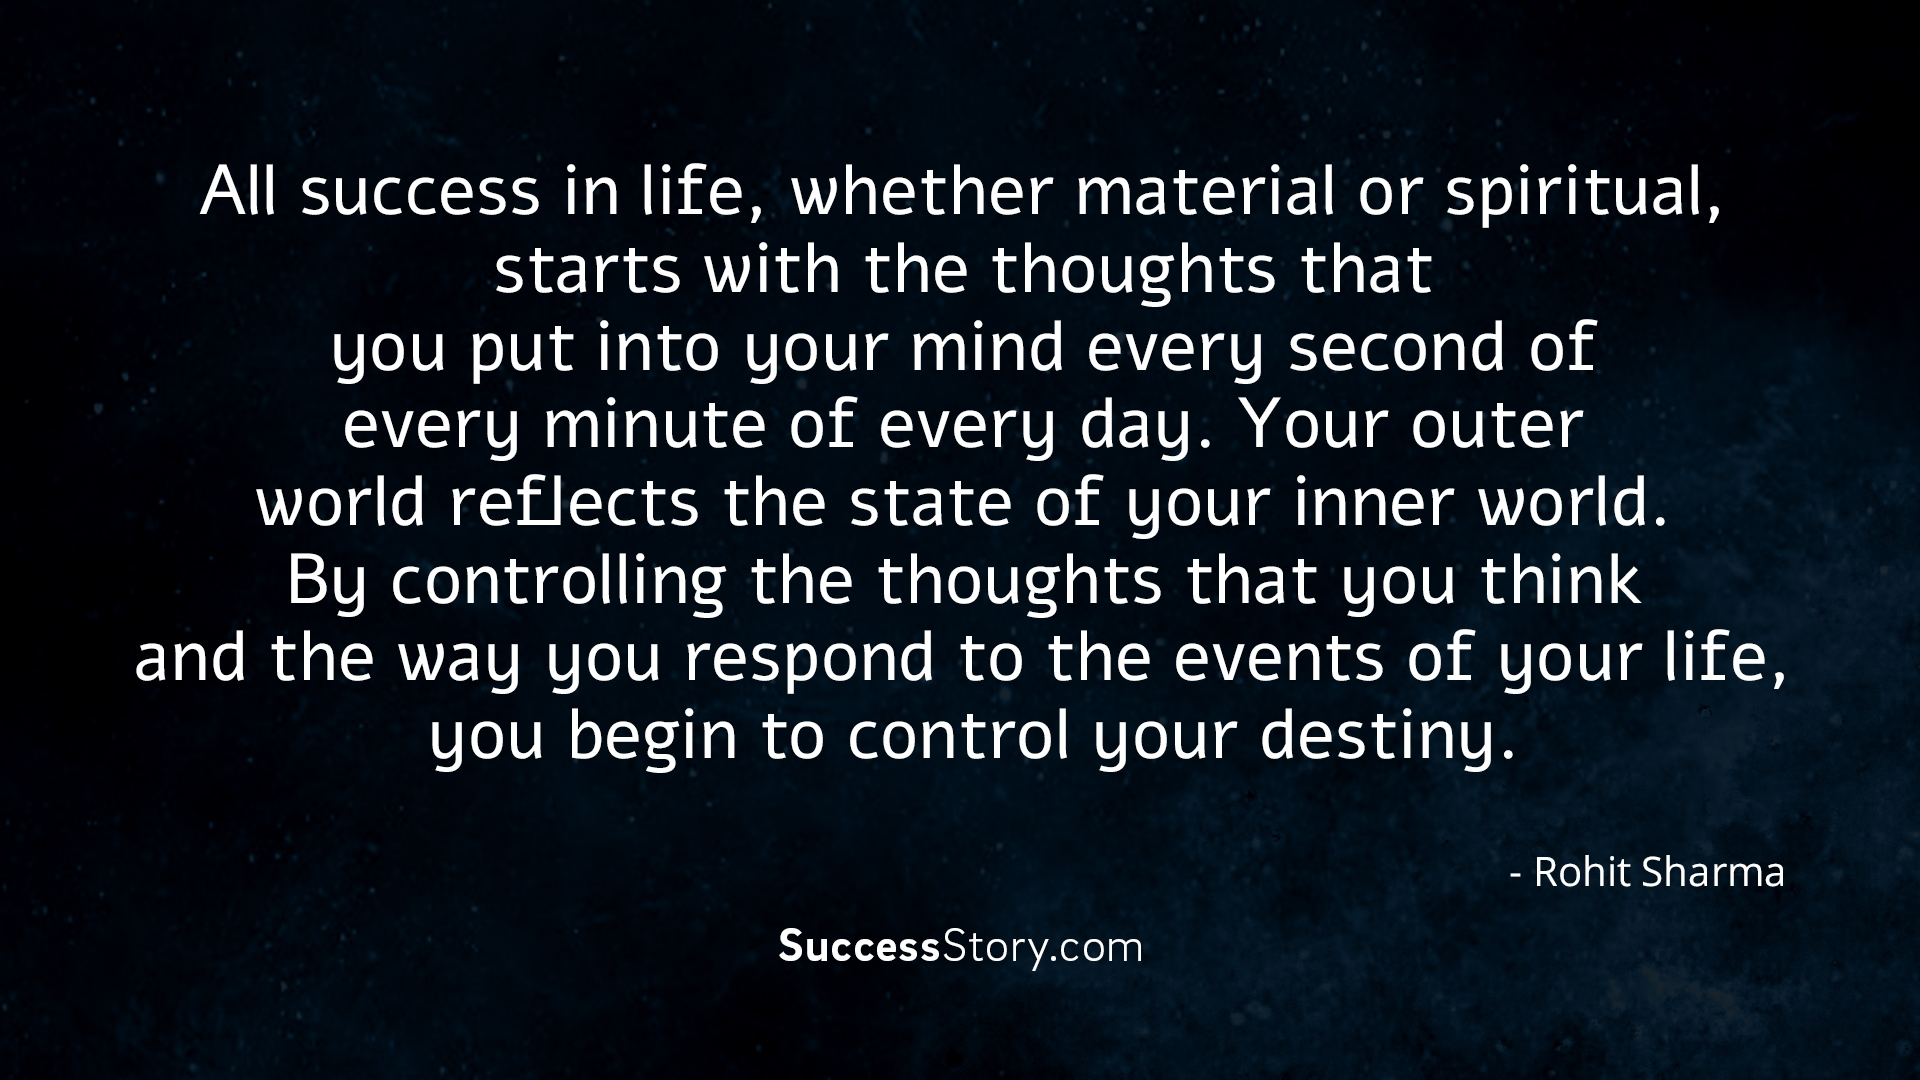 All success in life, whether